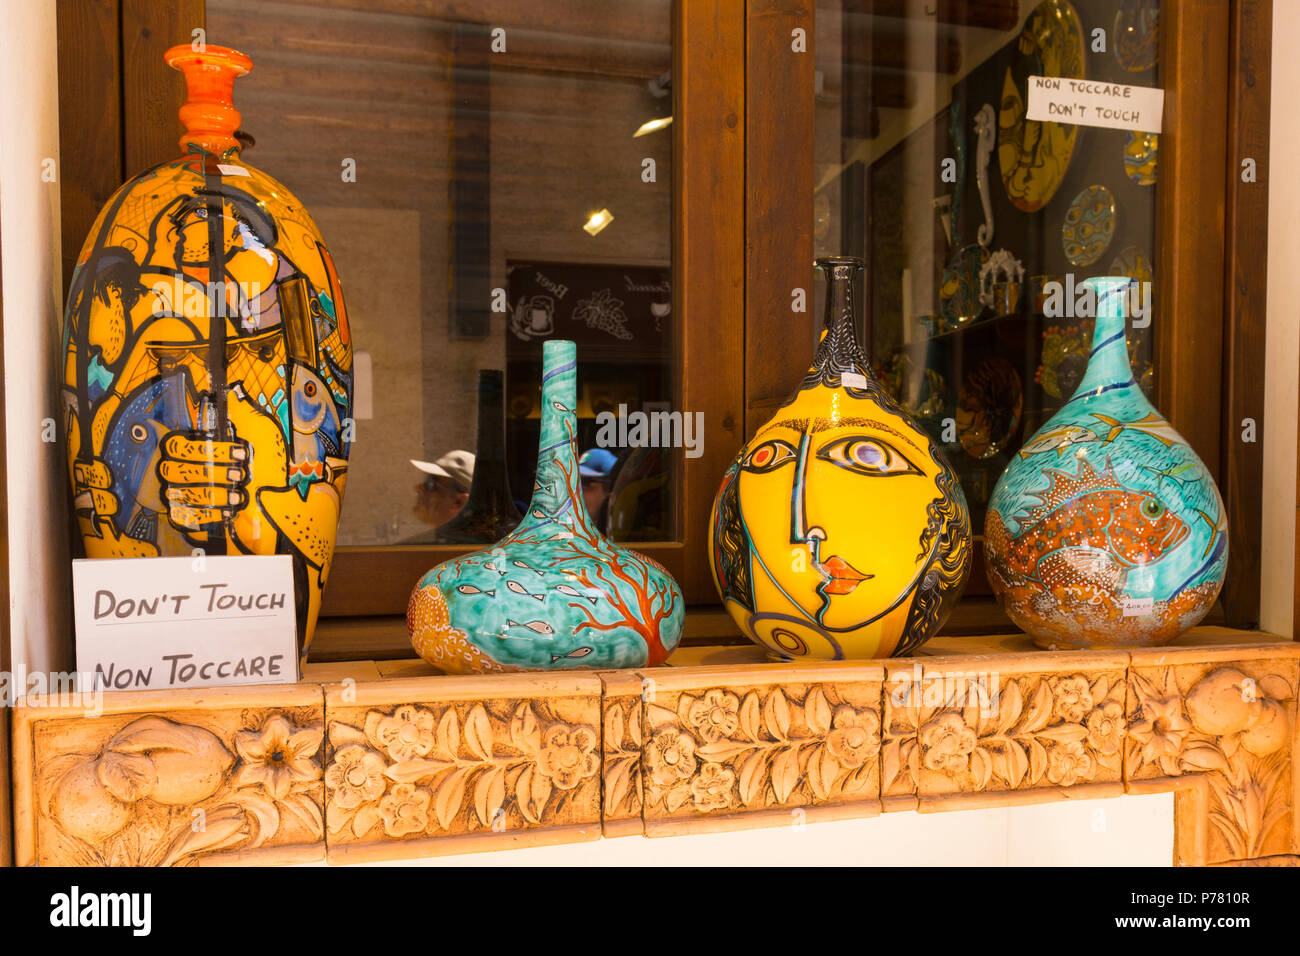 Italy Sicily medieval walled town Erice on Monte San Giuliana cult Venus Erycina decorative colourful urns vases display shop store window - Stock Image